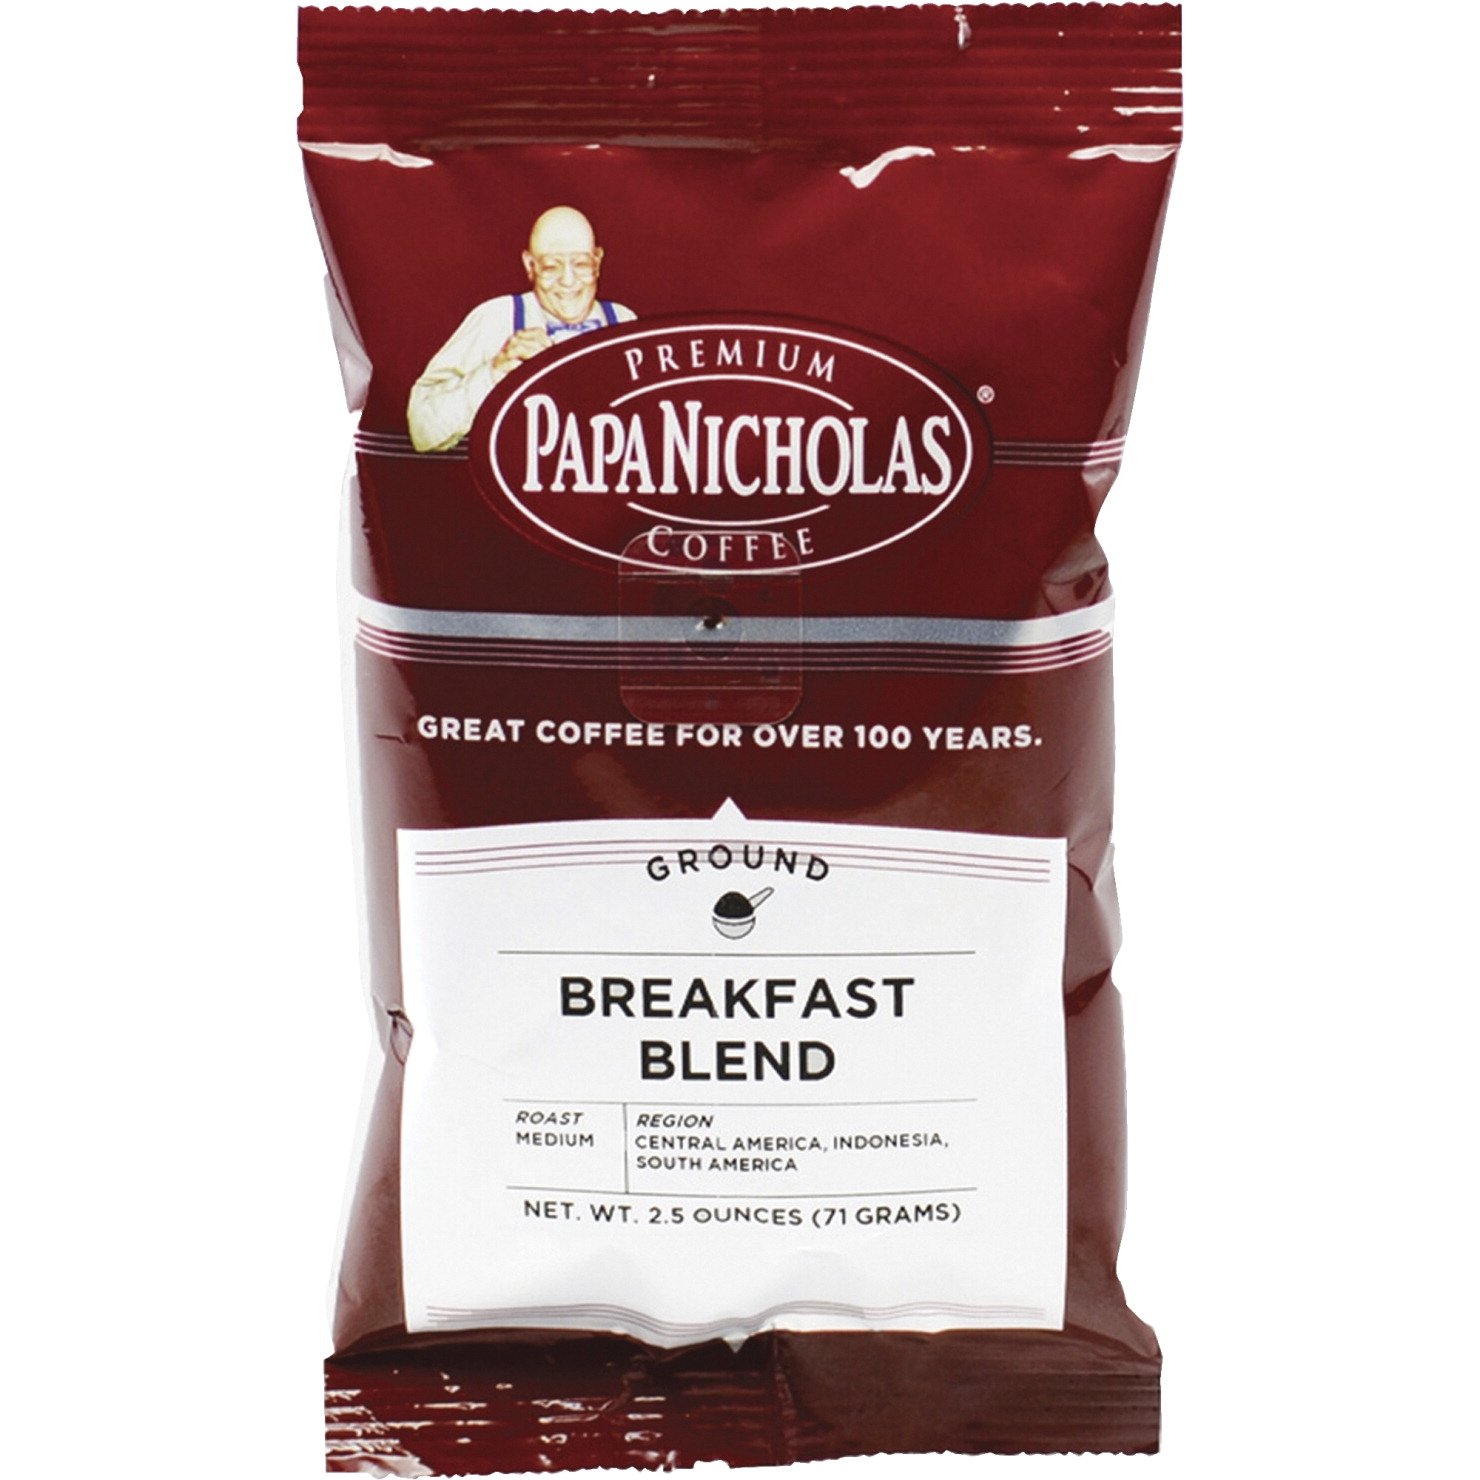 Papanicholas Breakfast Blend Pre-ground Premium Coffee Packet; 2.5 Oz; Brown; Pack Of 18 - 1446310 - Facilities Management Facility Supplies Foodservice 1446310